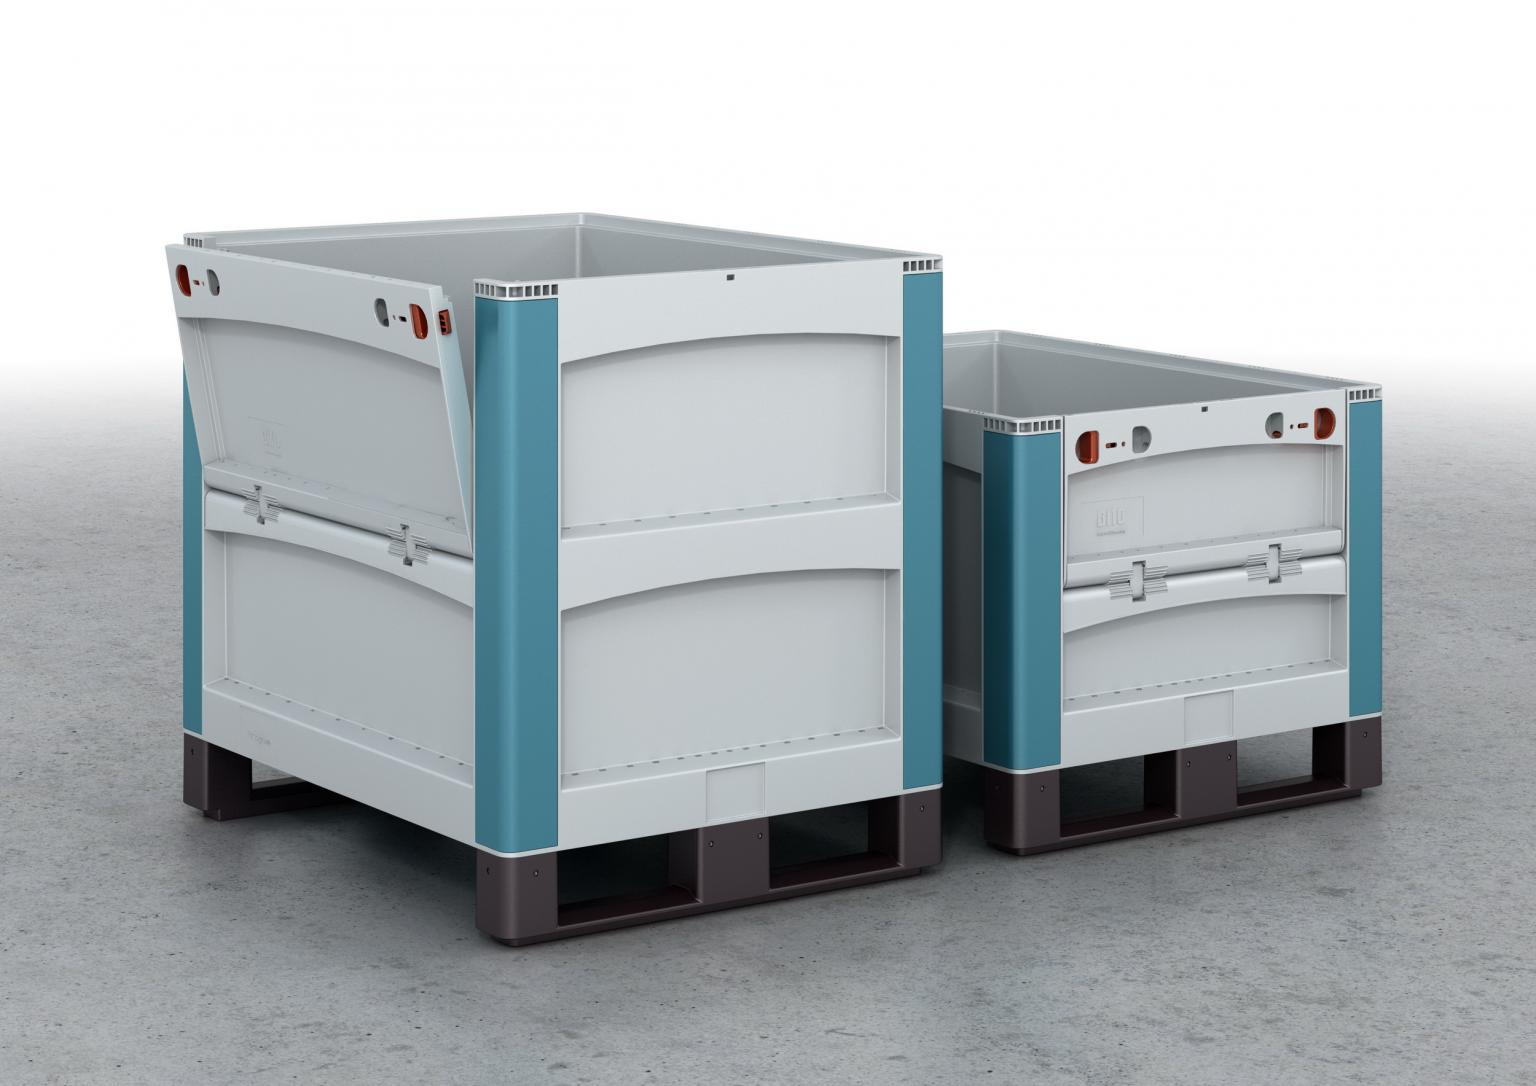 BITO's heavy-load containers can accommodate a load of 500kg. They can be adapted to suit individual requirements by means of different design variants and options